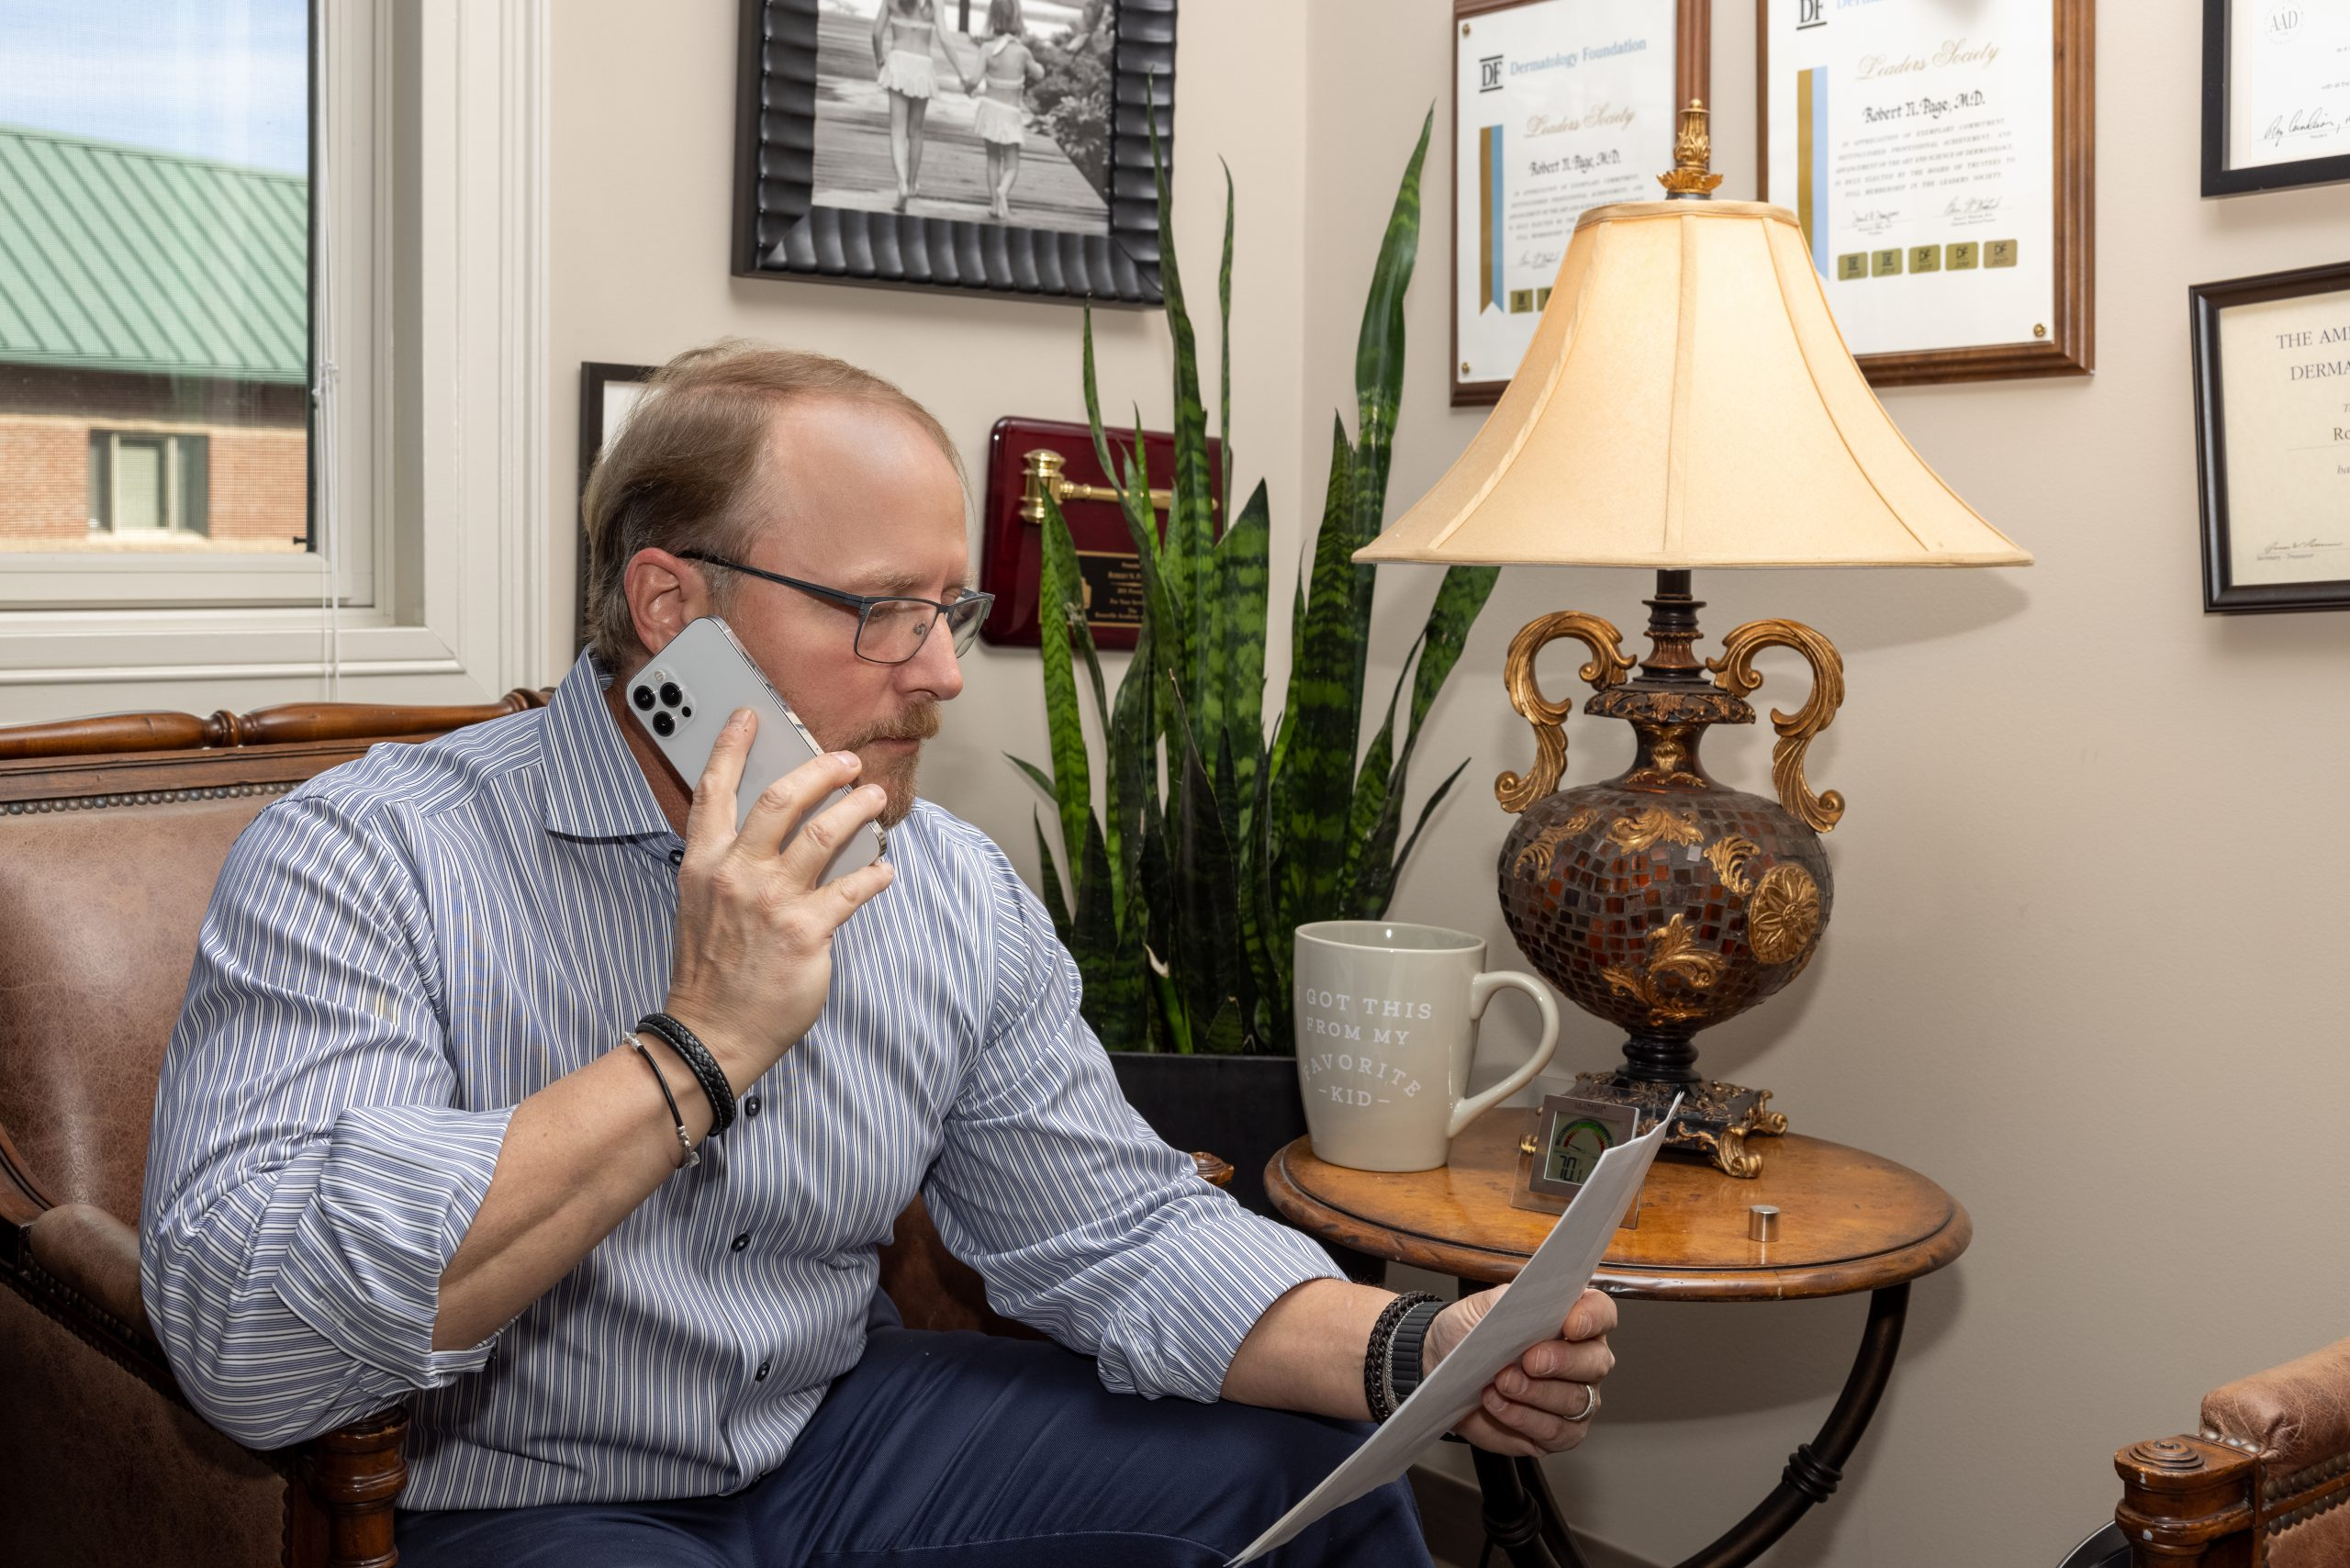 physician on a phone call and reading a document